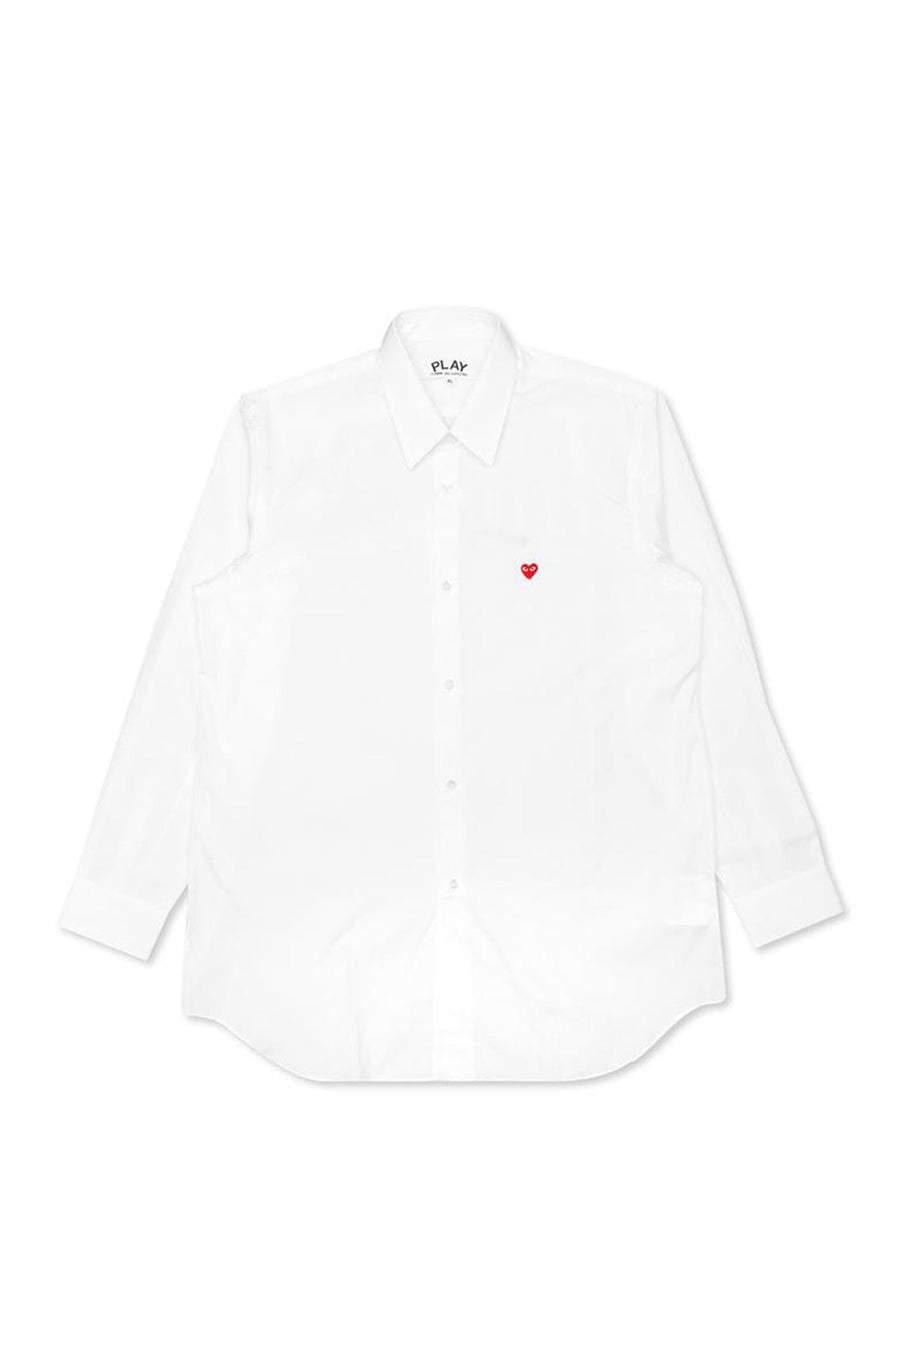 Comme des Garçons - White Red Heart Button Up Shirt | 1032 SPACE